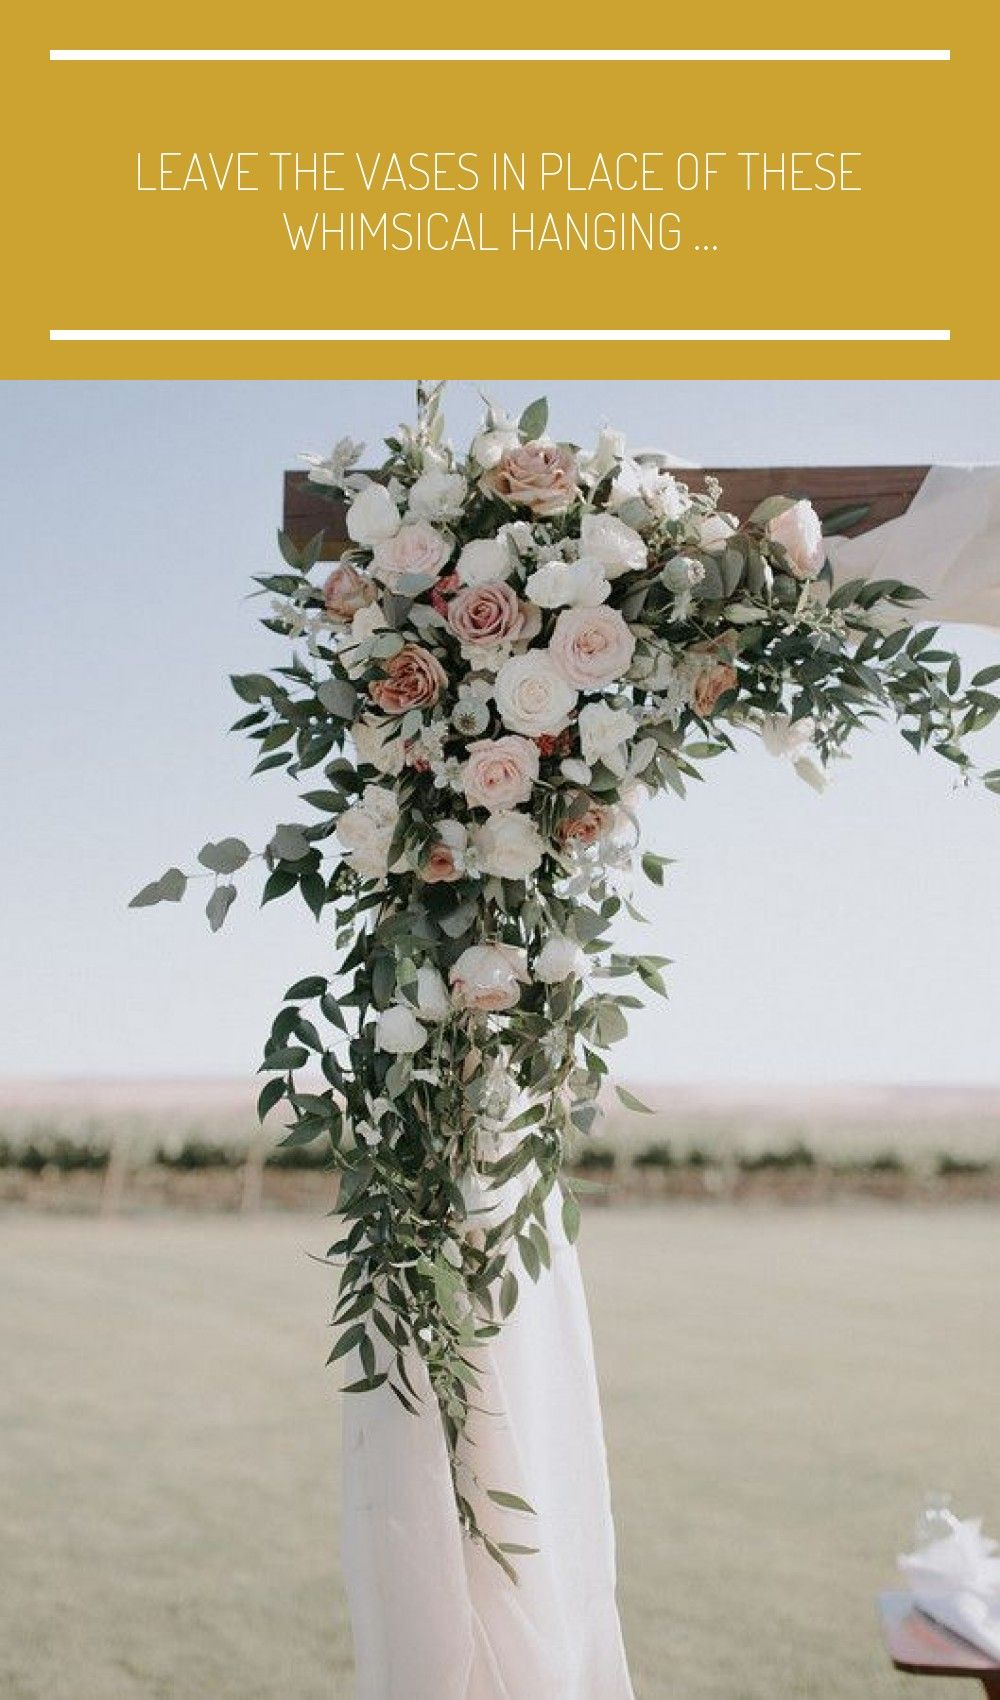 Romantische und emotionale Weinberghochzeit in zentralem Washington, #emotionale #romantische #und #Washington #Weinberghochzeit #zentralem #wedding flowers decoration ideas Romantische und emotionale Weinberghochzeit in zentralem Washington